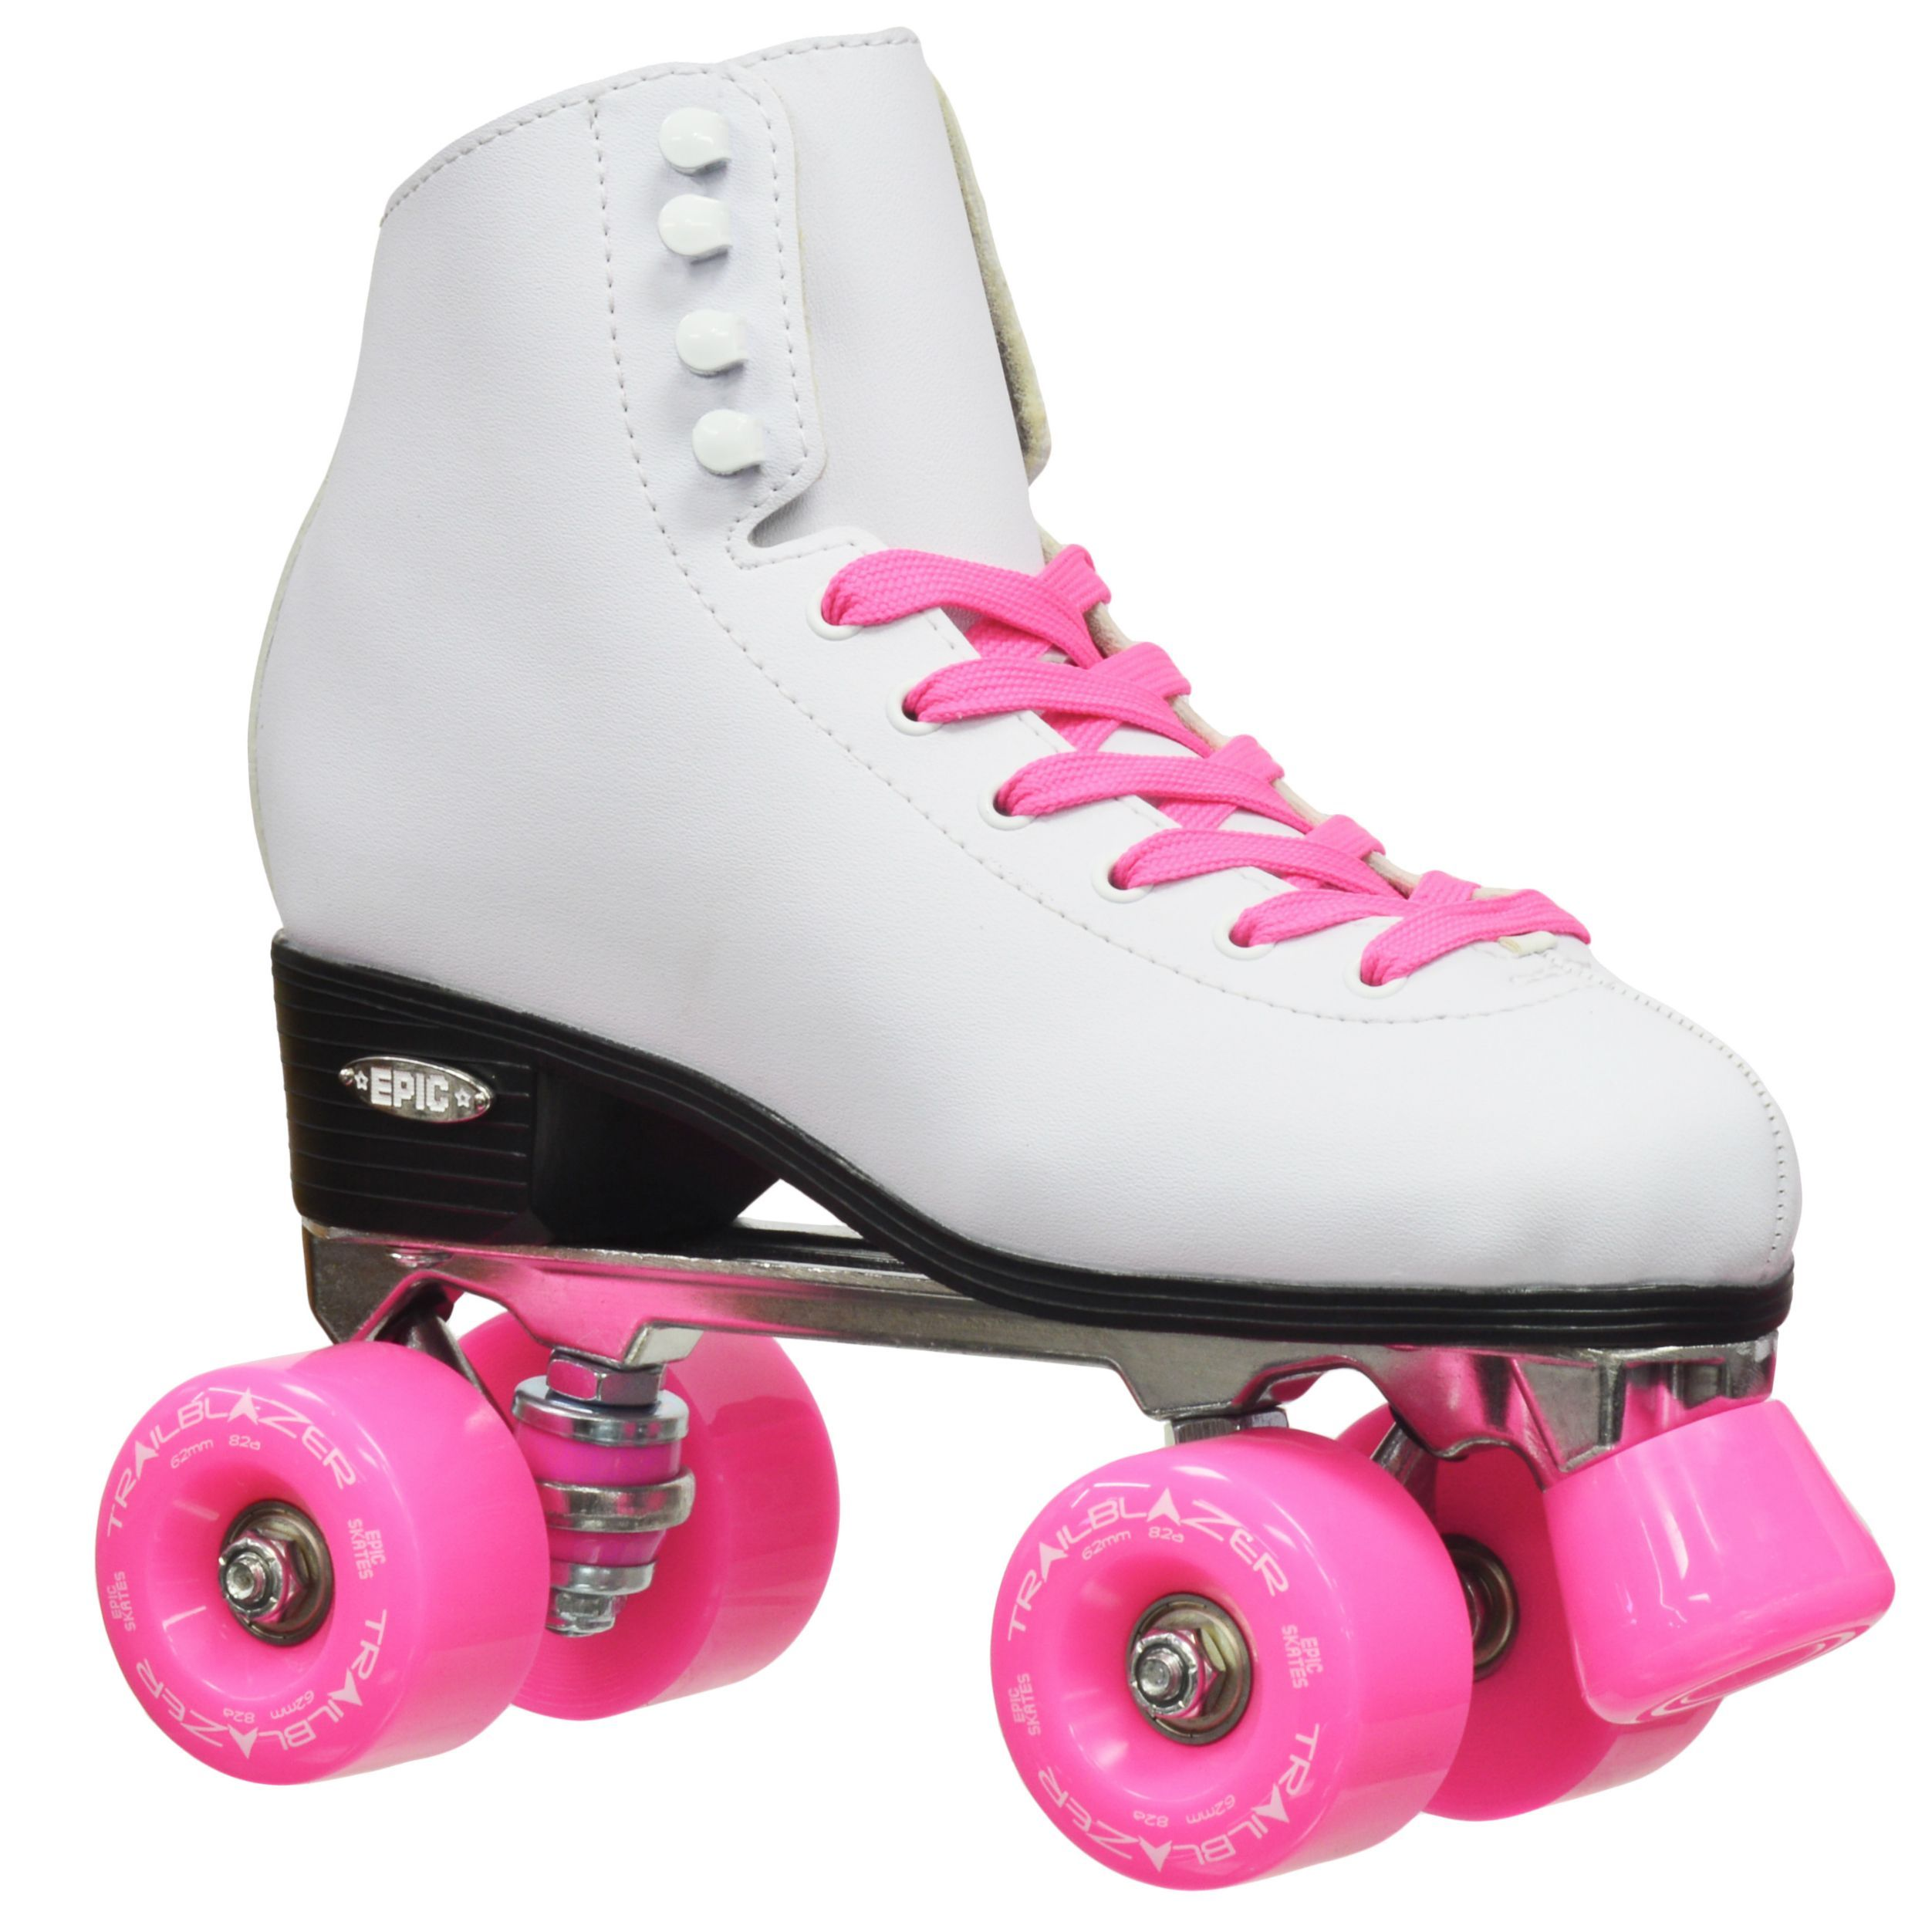 Roller skates under 20 dollars - Epic Classic Women S High Top Quad Roller Skates White With Pink Wheels By Epic Skates